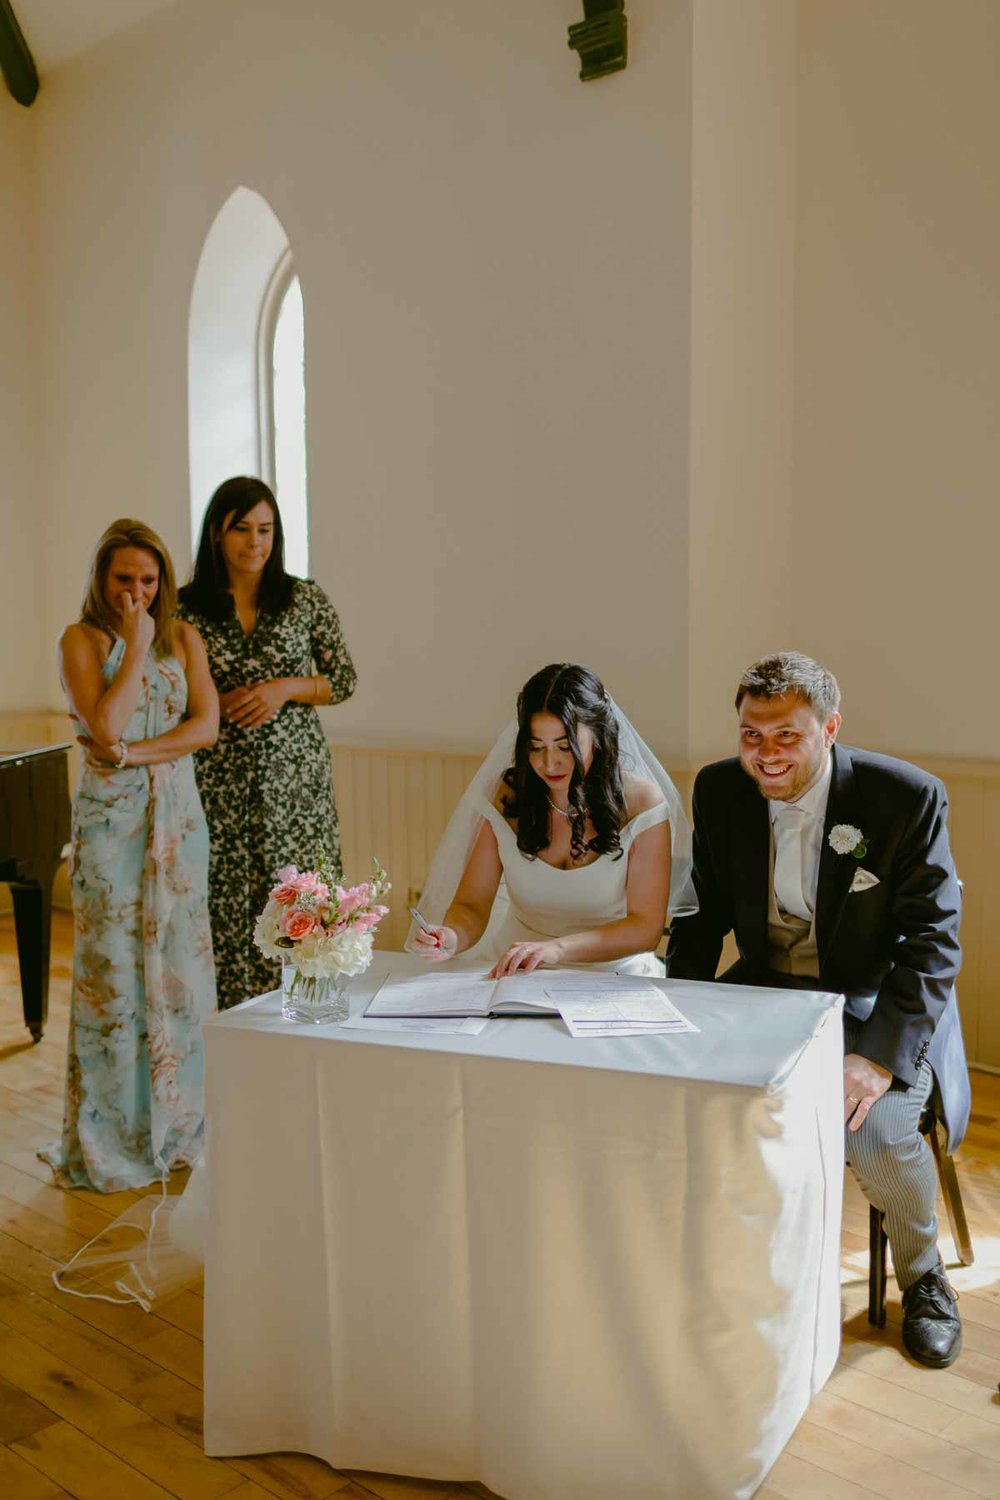 enoch turner schoolhouse wedding by evolylla photography 0018.jpg